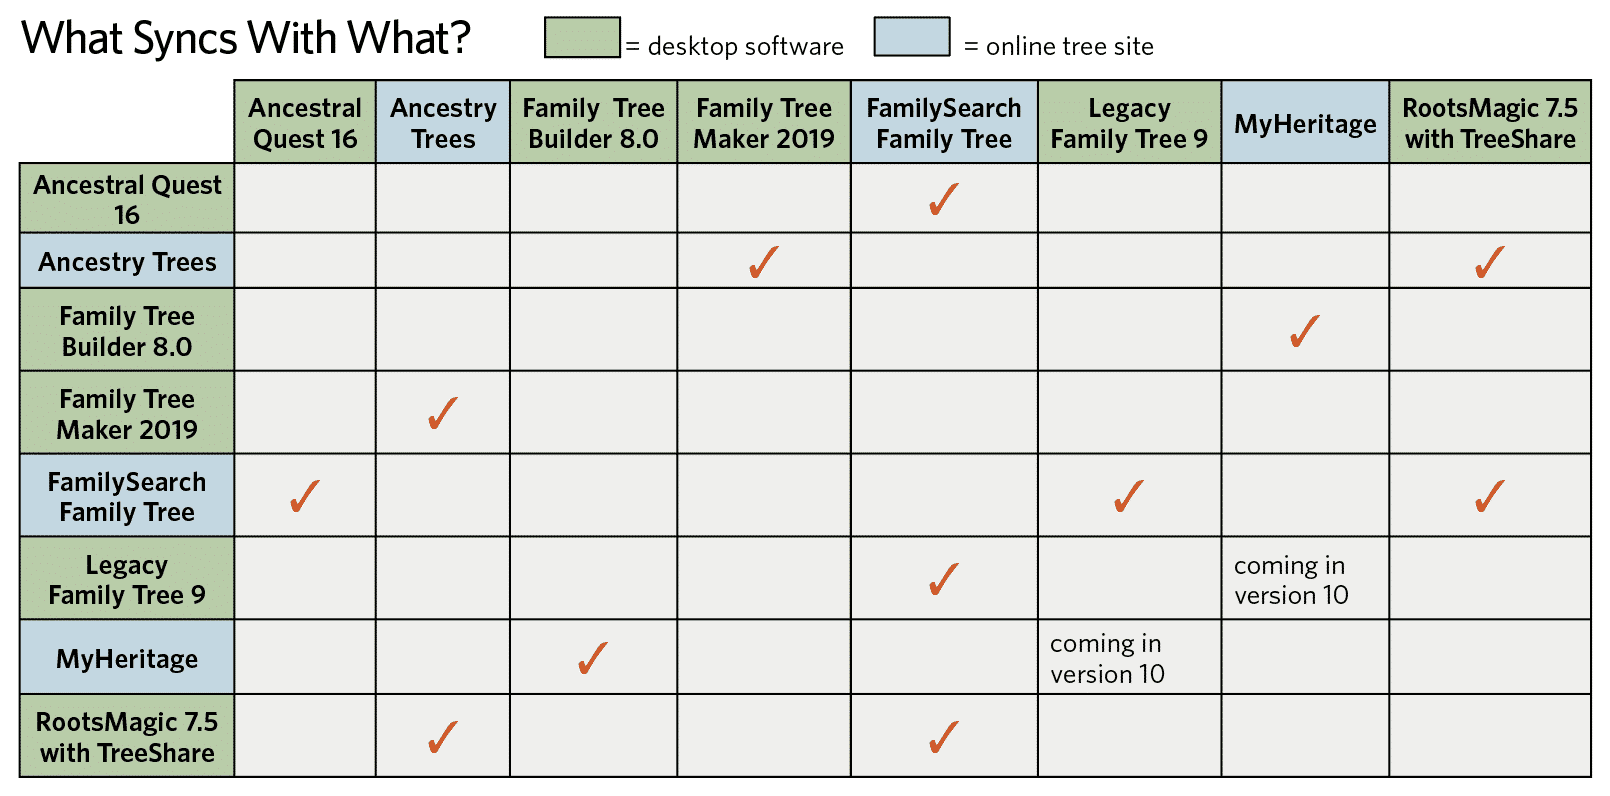 Chart of genealogy software and online tree syncing compatibility.